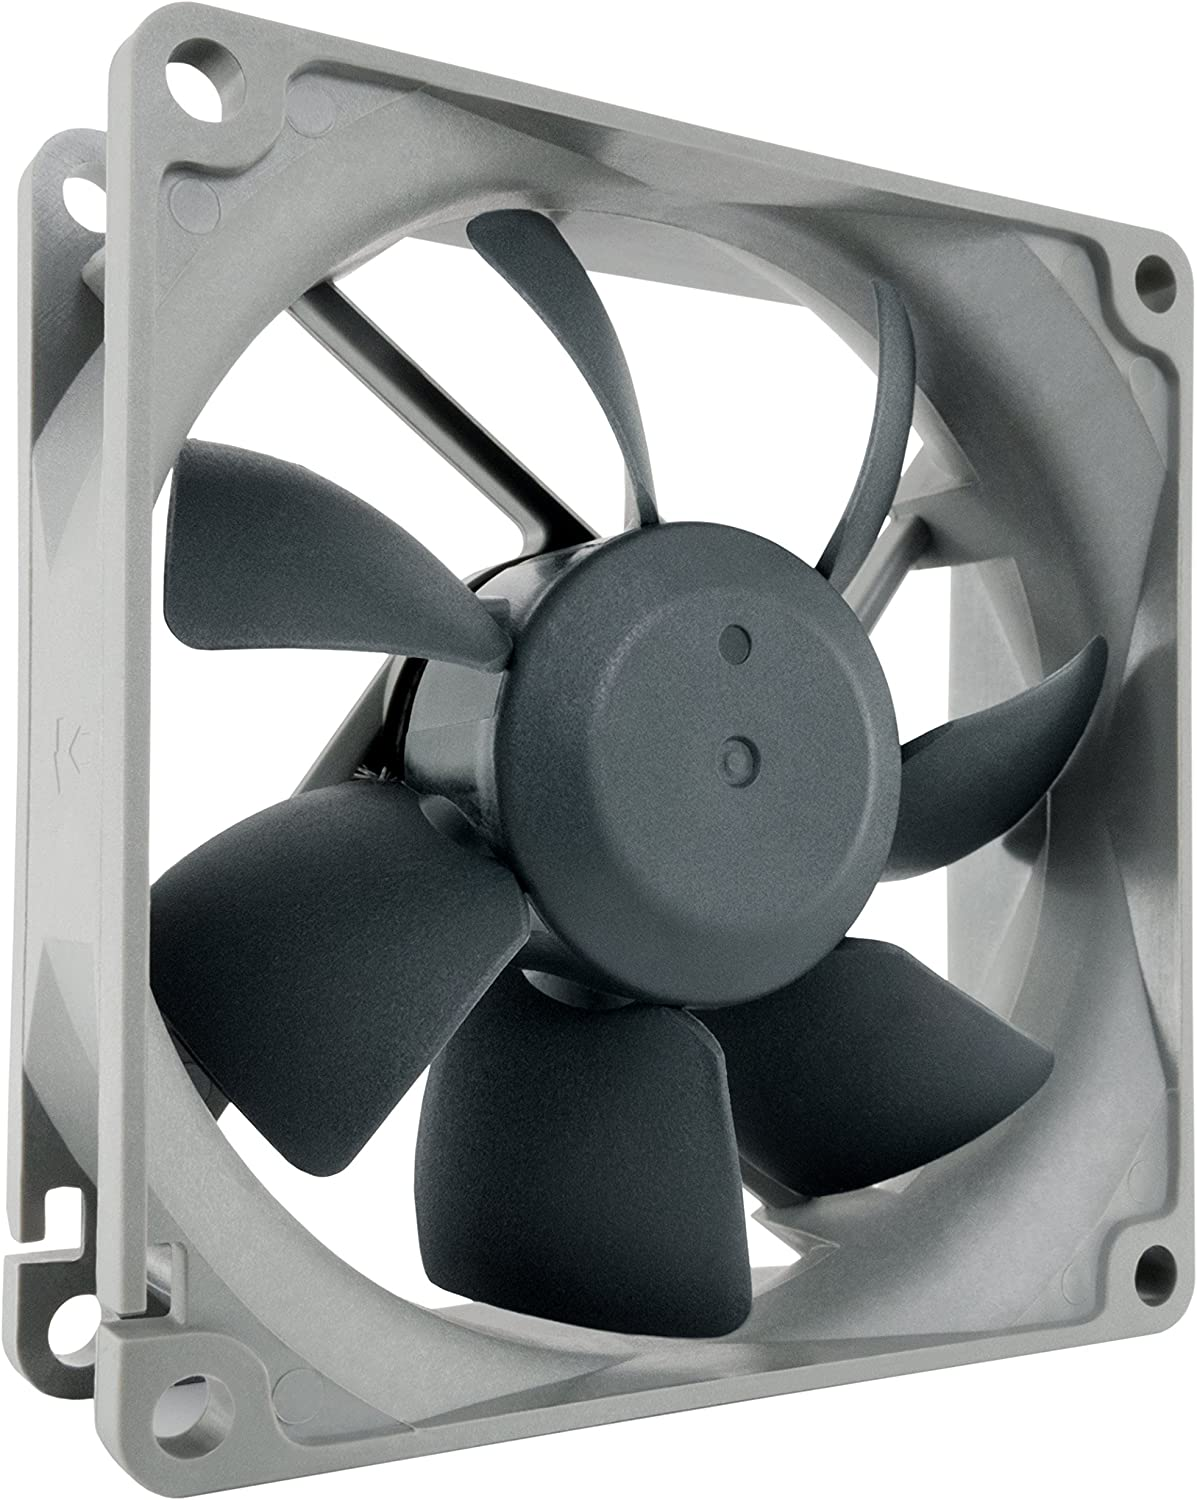 Noctua NF-R8 redux-1800, 3-Pin, High Performance Cooling Fan with 1800RPM (80mm, Grey)